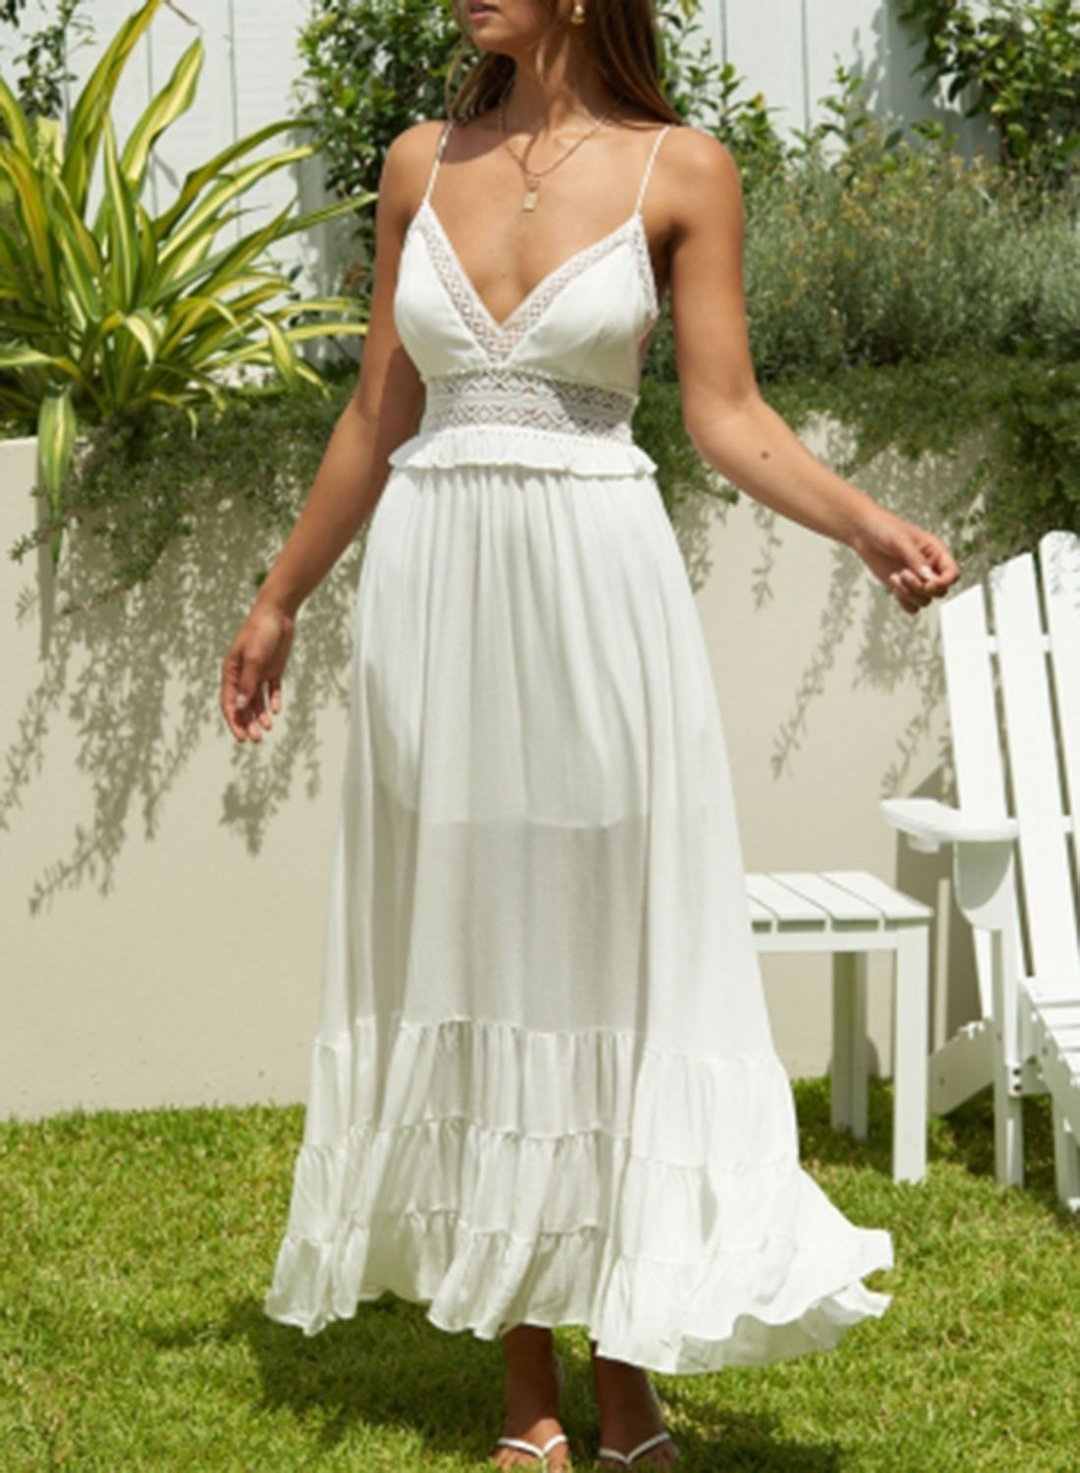 White Women's Dress Solid Fit & Flare Sleeveless Spaghetti Open-back Cut-out Summer Daily Vacation Maxi Dress LC614349-1